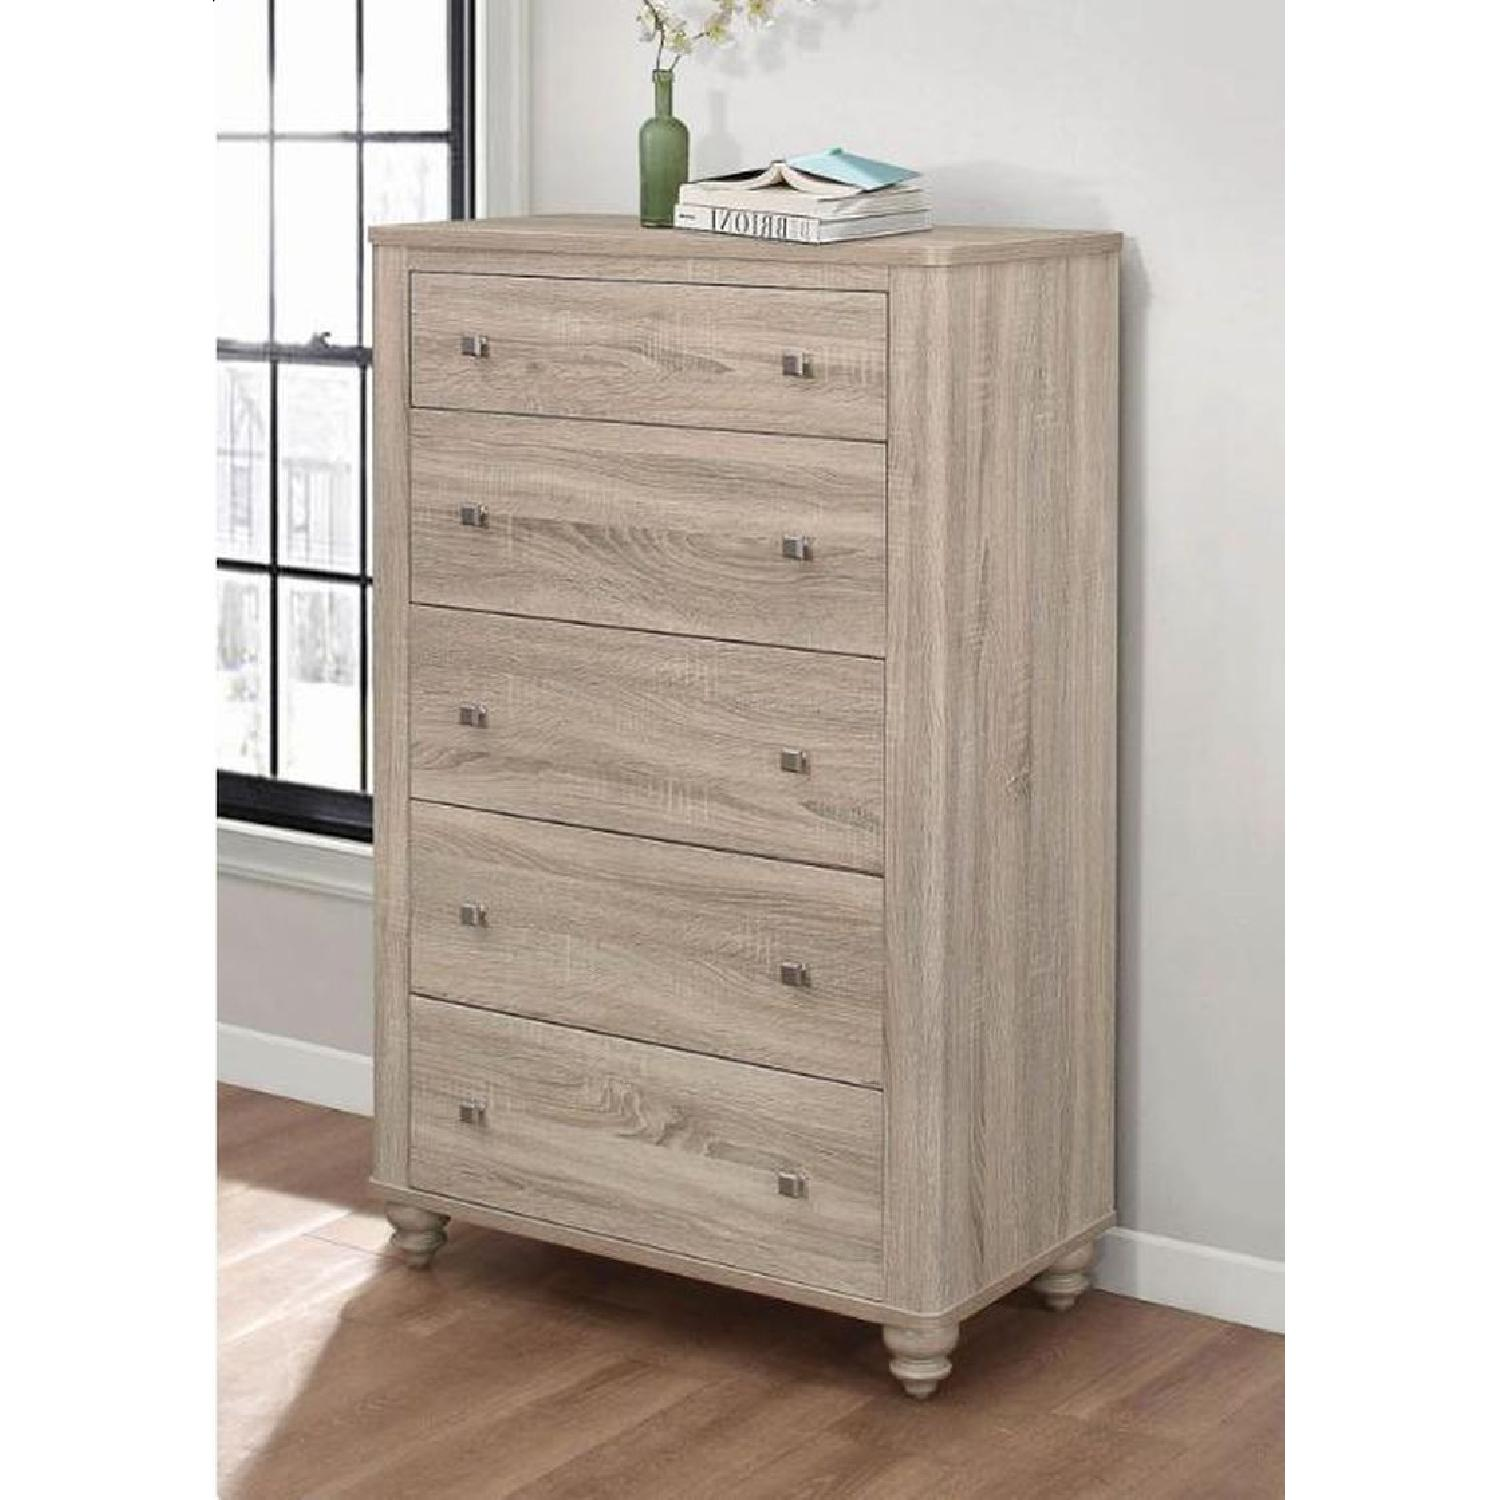 5-Drawer Chest in Natural Finish - image-3